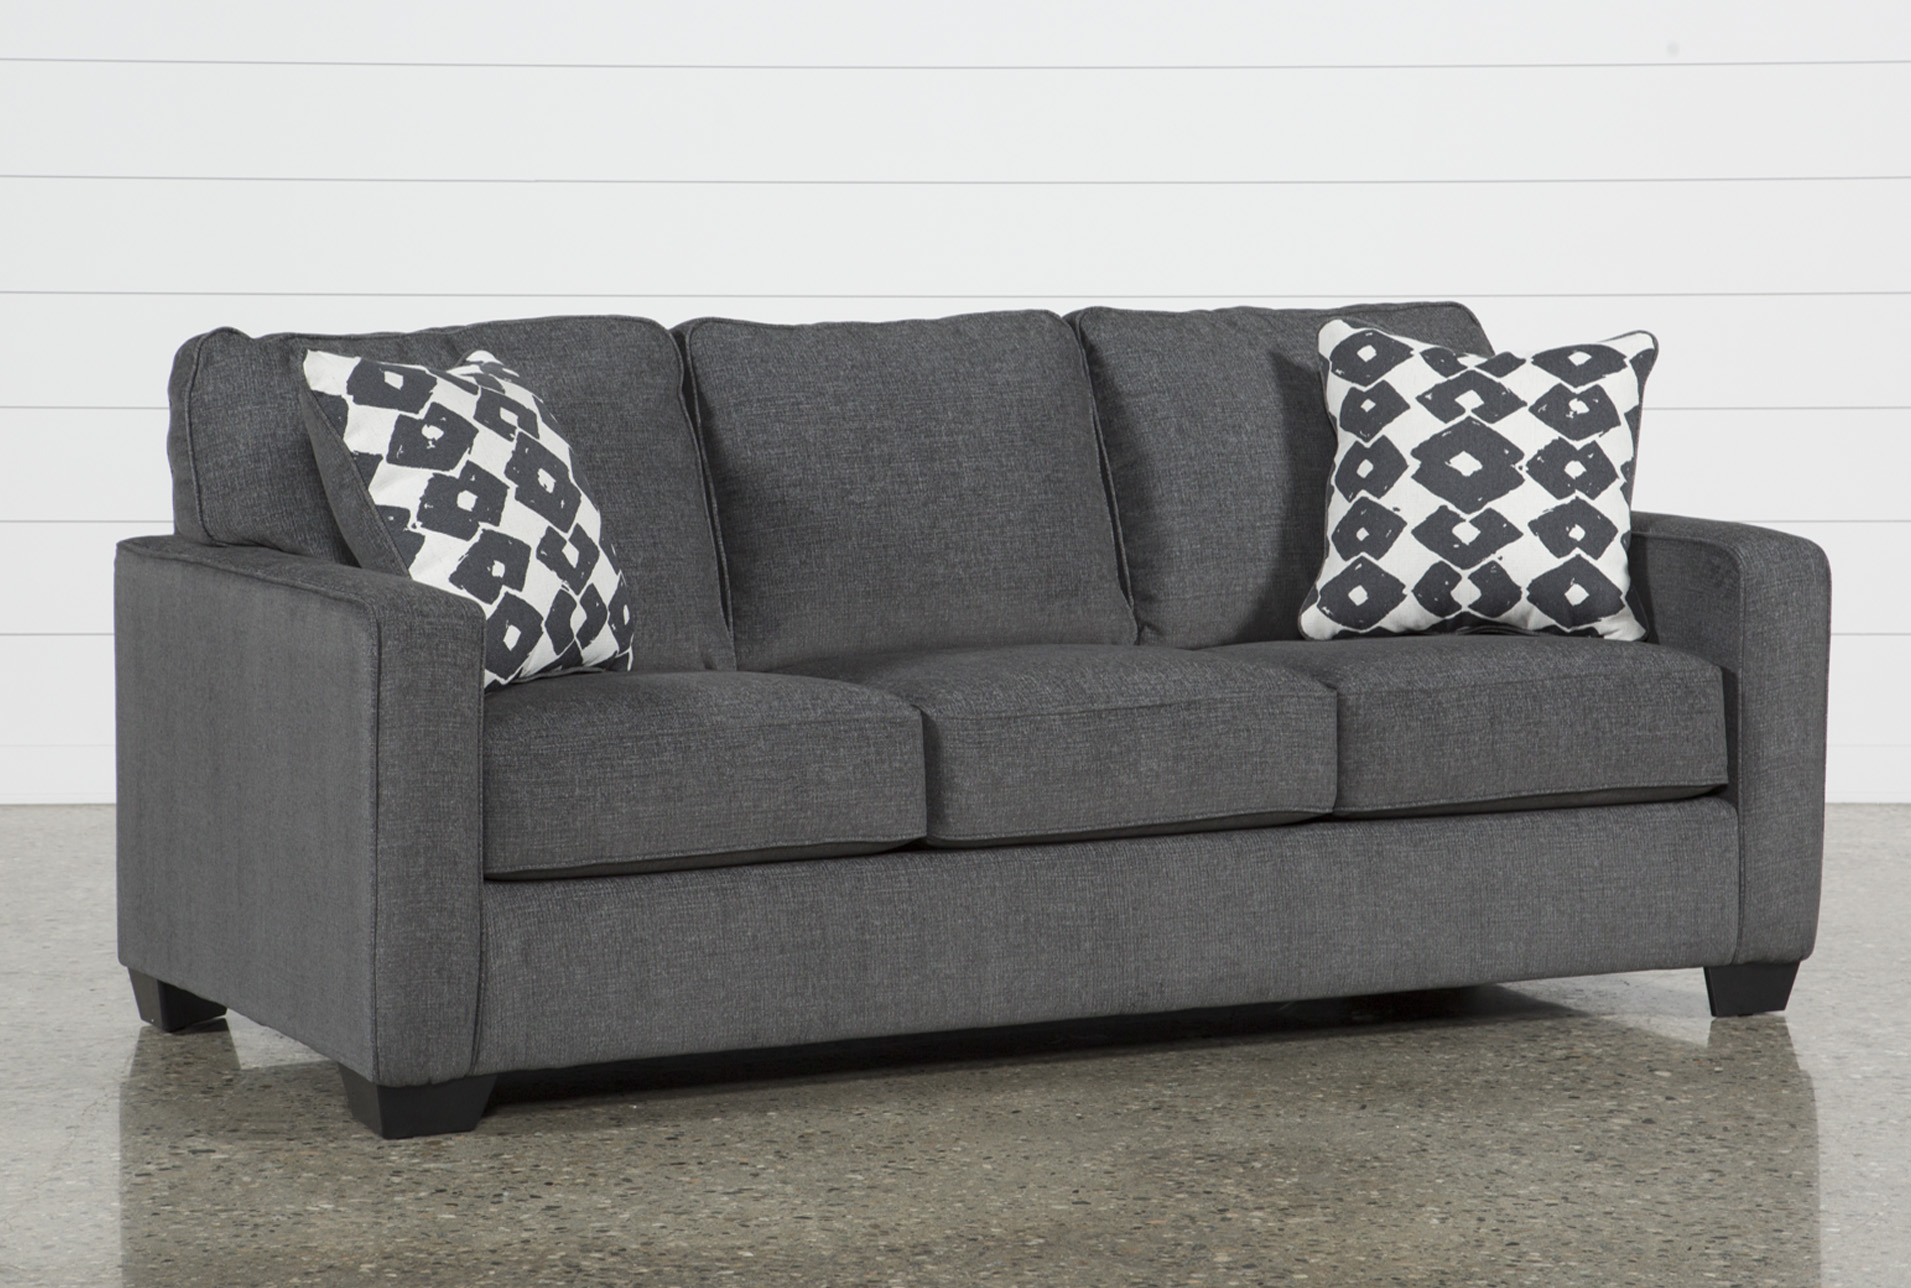 Turdur Queen Sofa Sleeper | Living Spaces